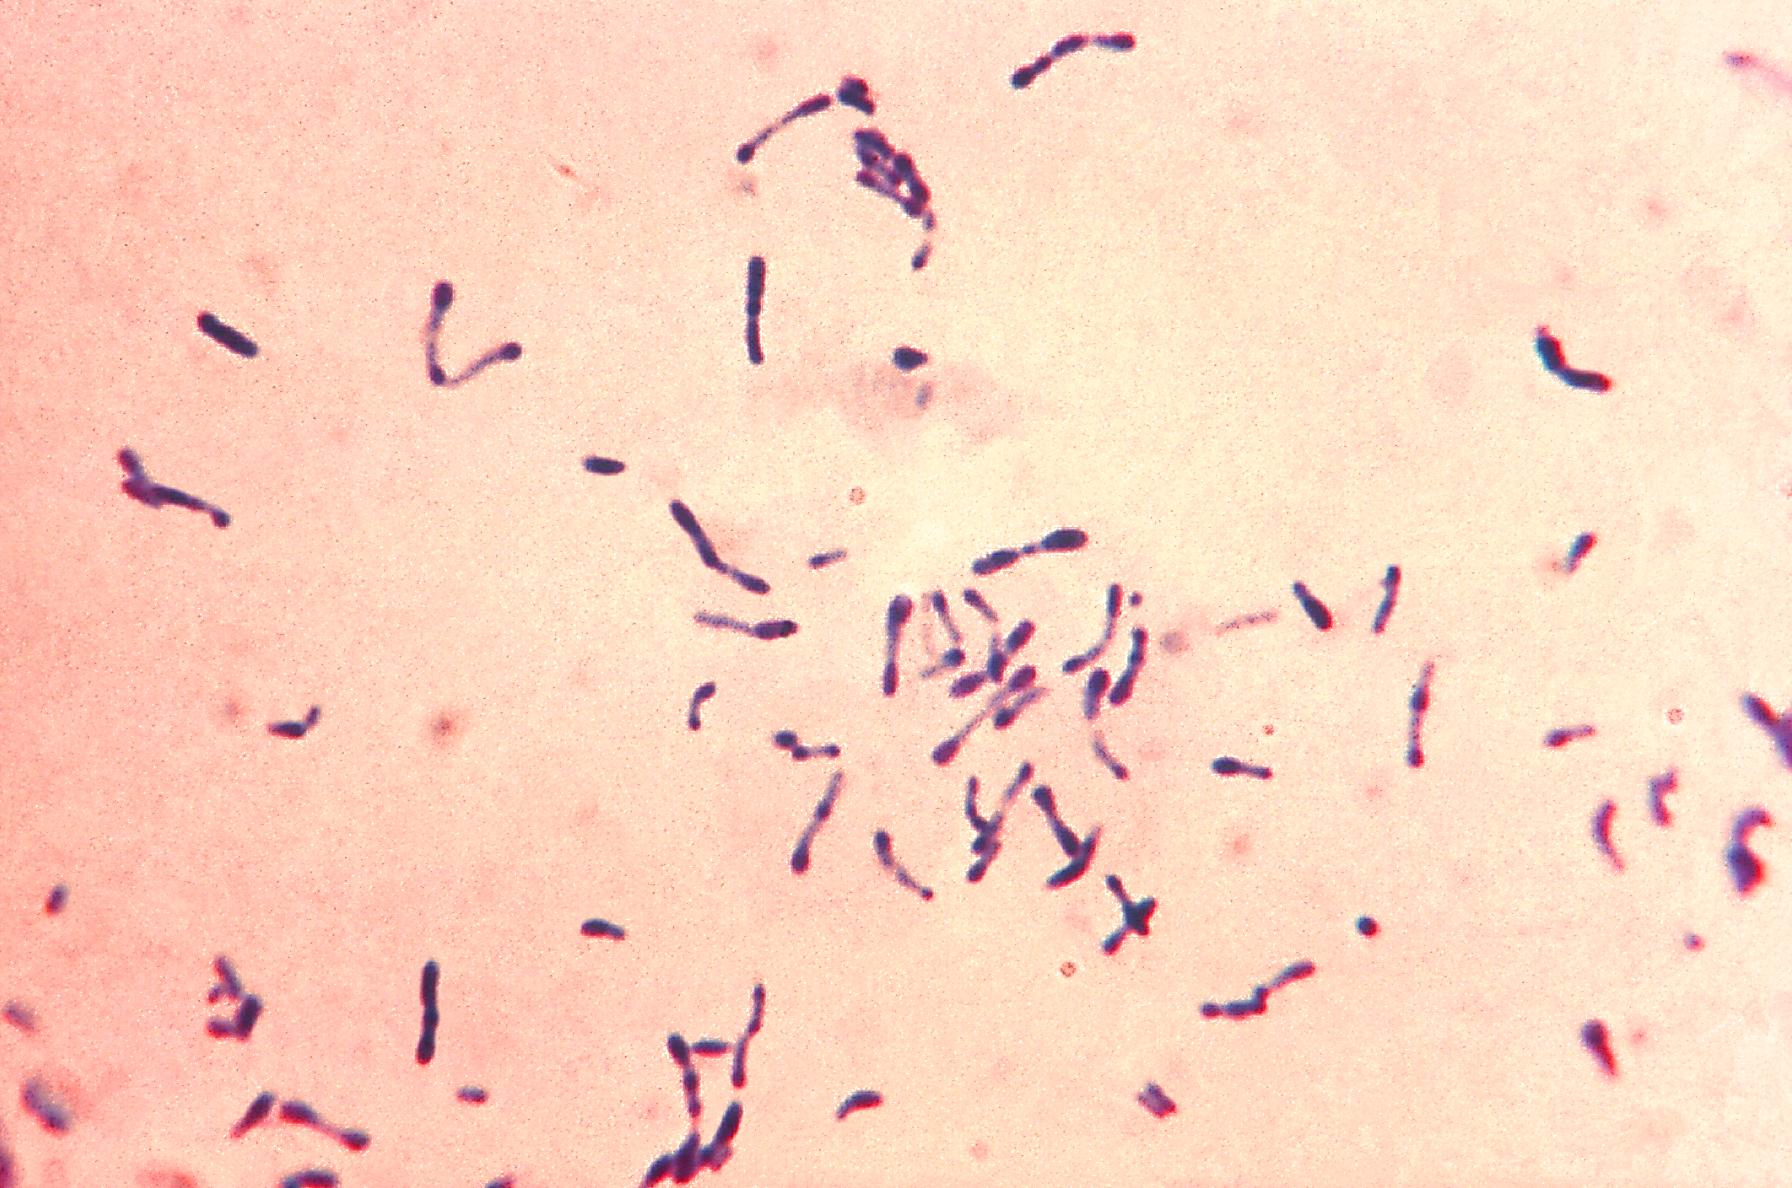 Gram stained Corynebacterium diphtheriae culture